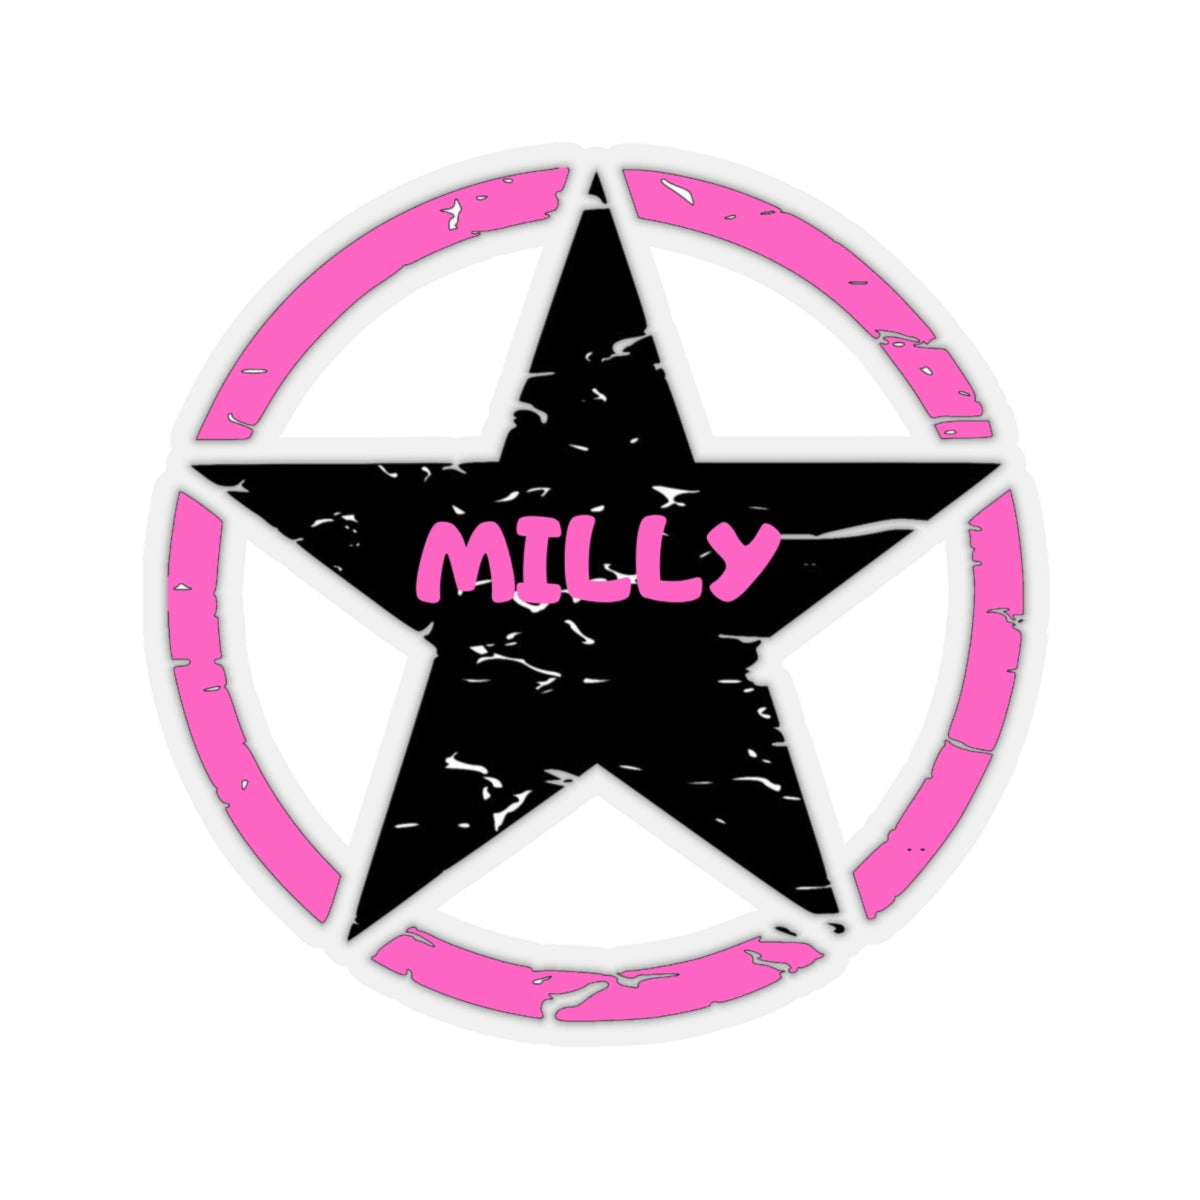 Milly Kiss-Cut Stickers.